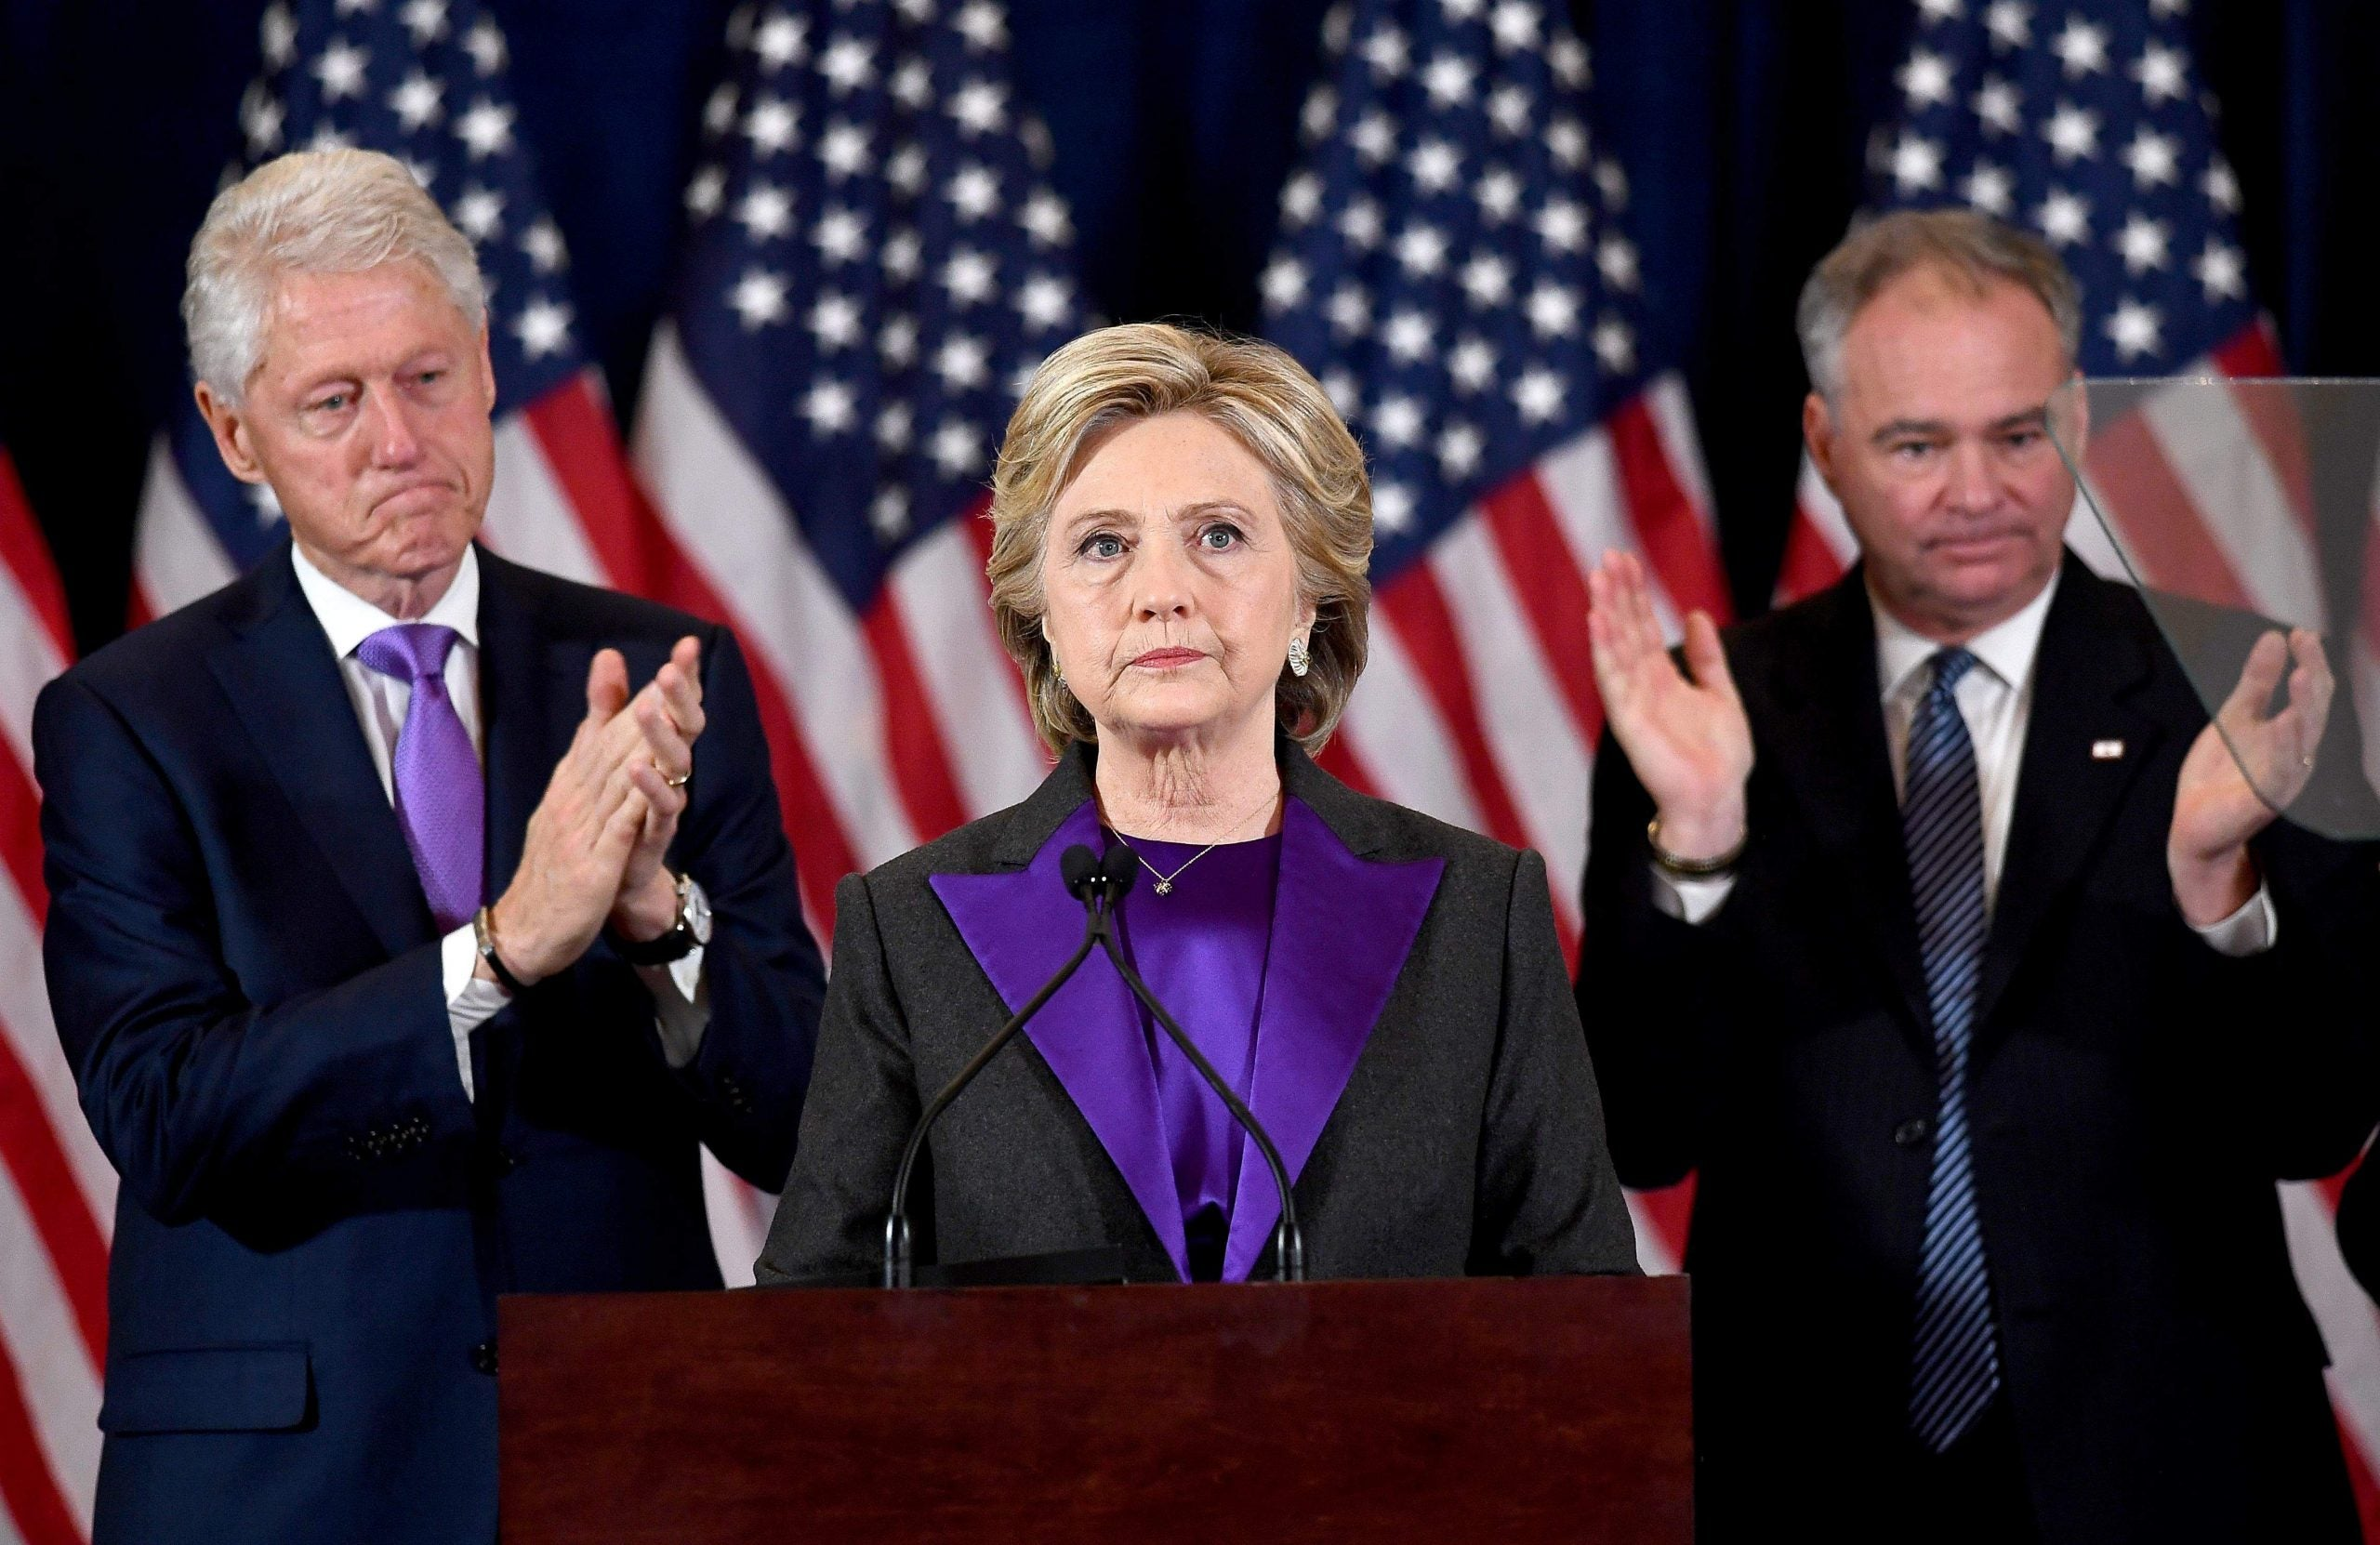 Hillary Clinton deserved to lose